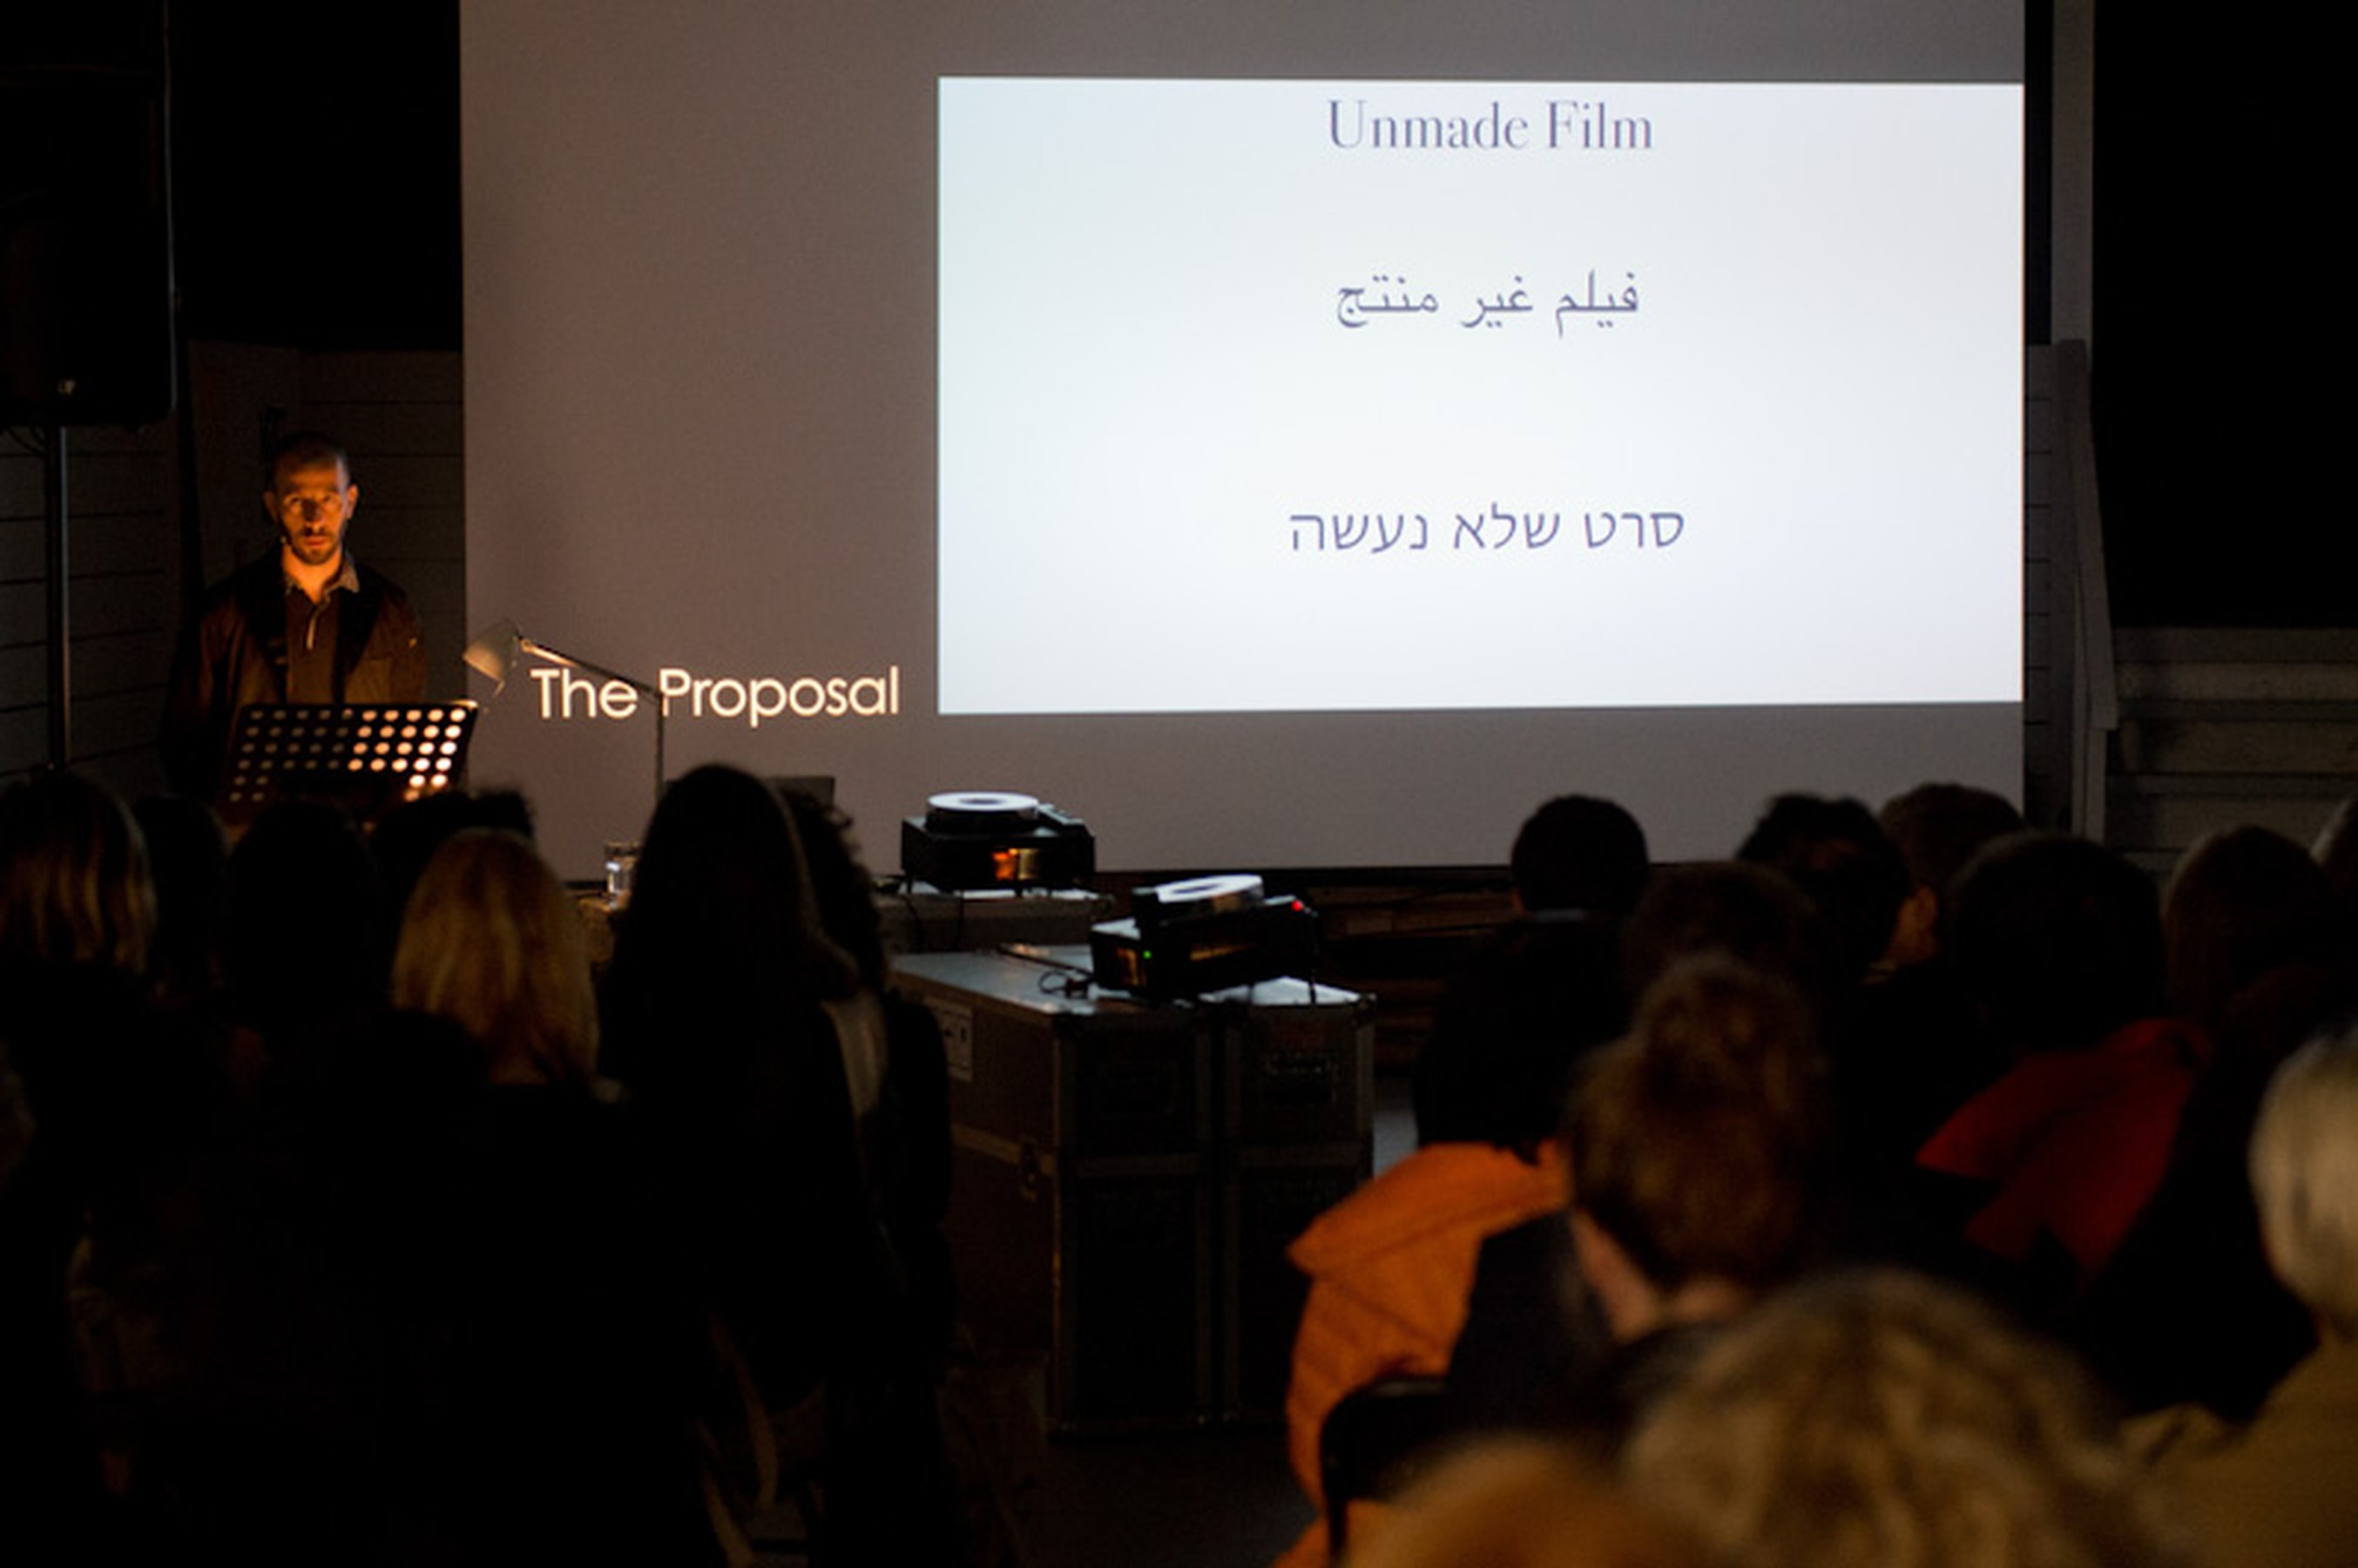 Unmade Film - The Proposal, 2013-2015 lecture performance 45'